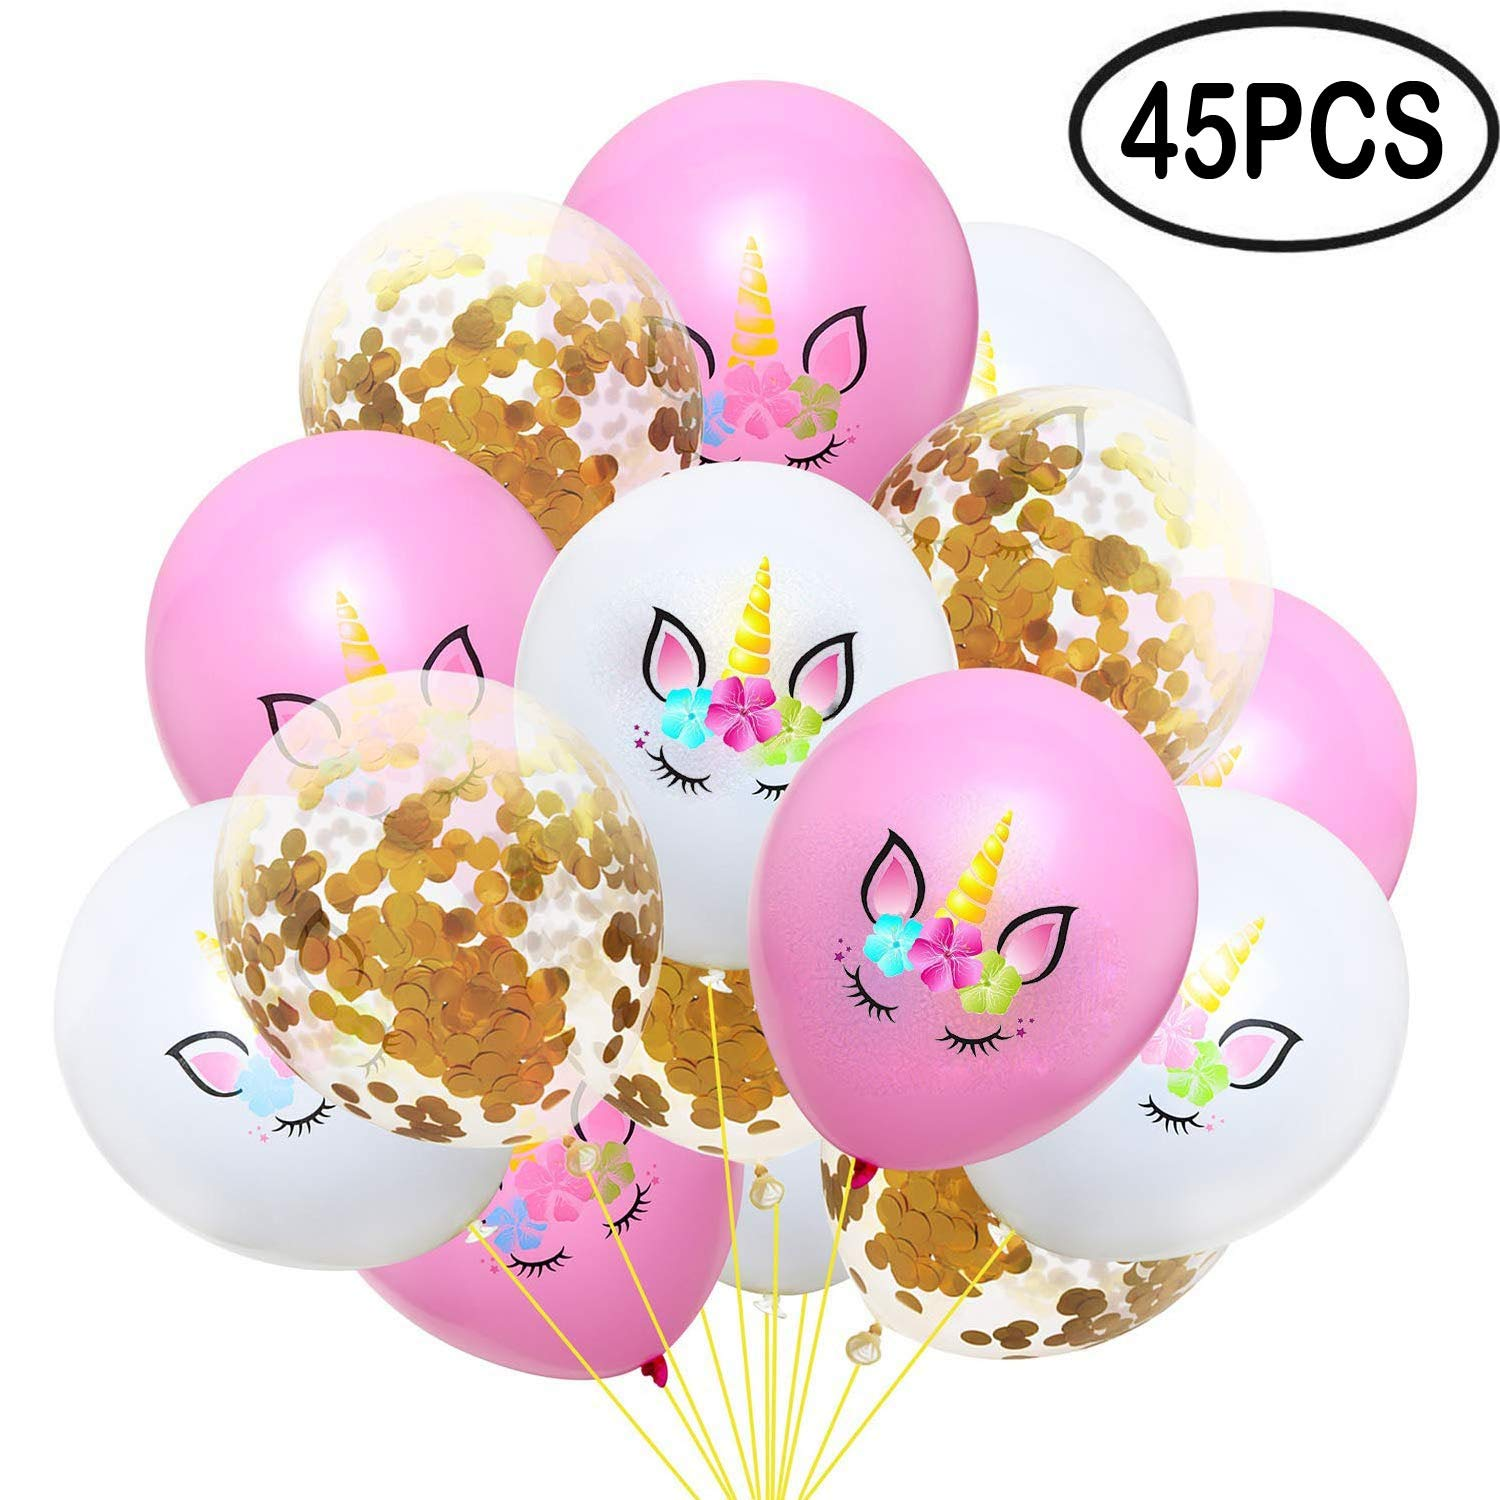 "Unicorn Balloons Party Balloons Latex 12"" Balloons Birthday or Wedding - 45 Pack"